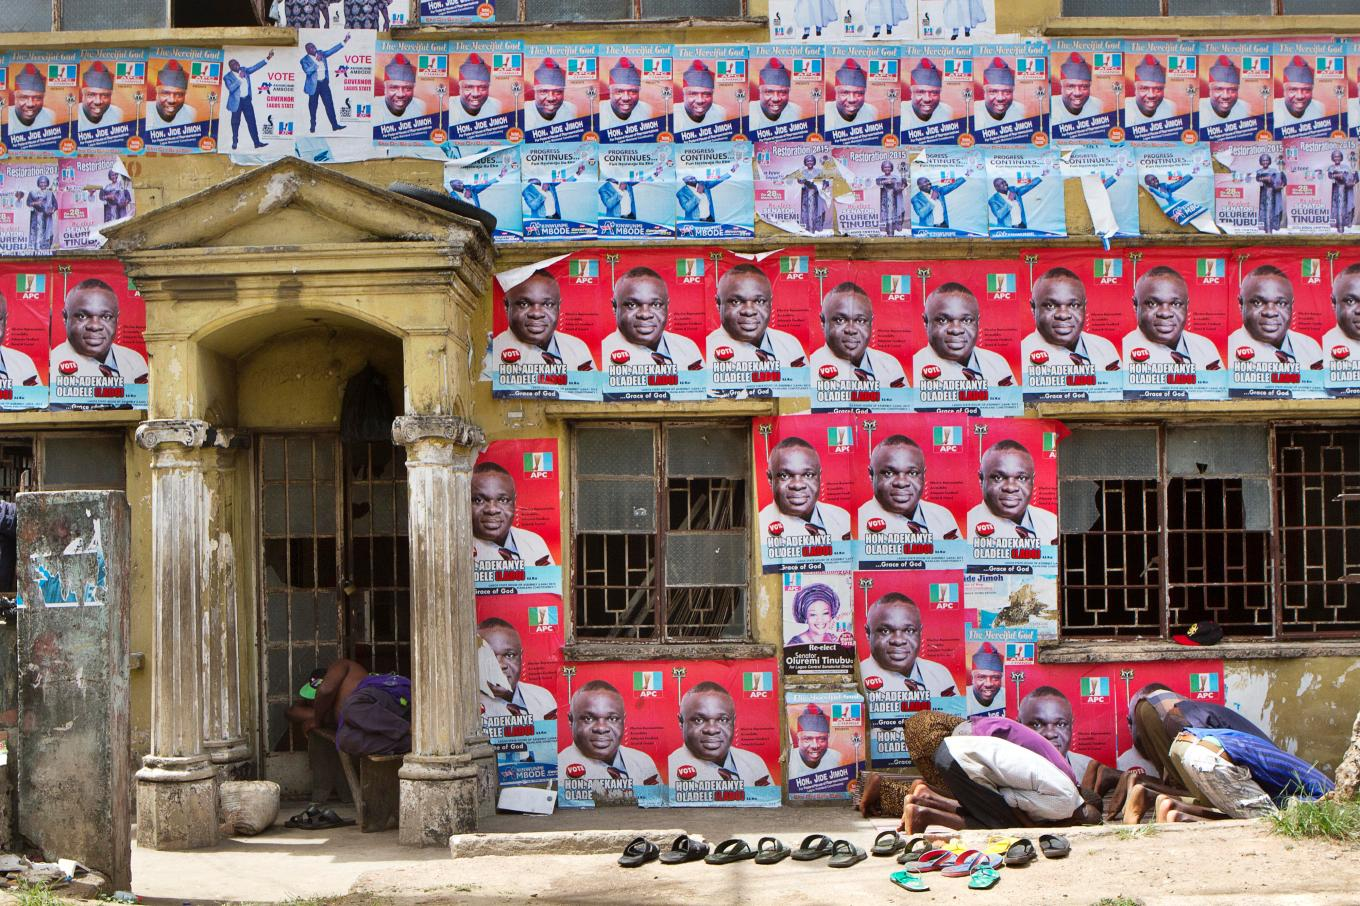 Prayer and political posters in the ebute metta neighborhood on the mainland photo by andrew esiebo